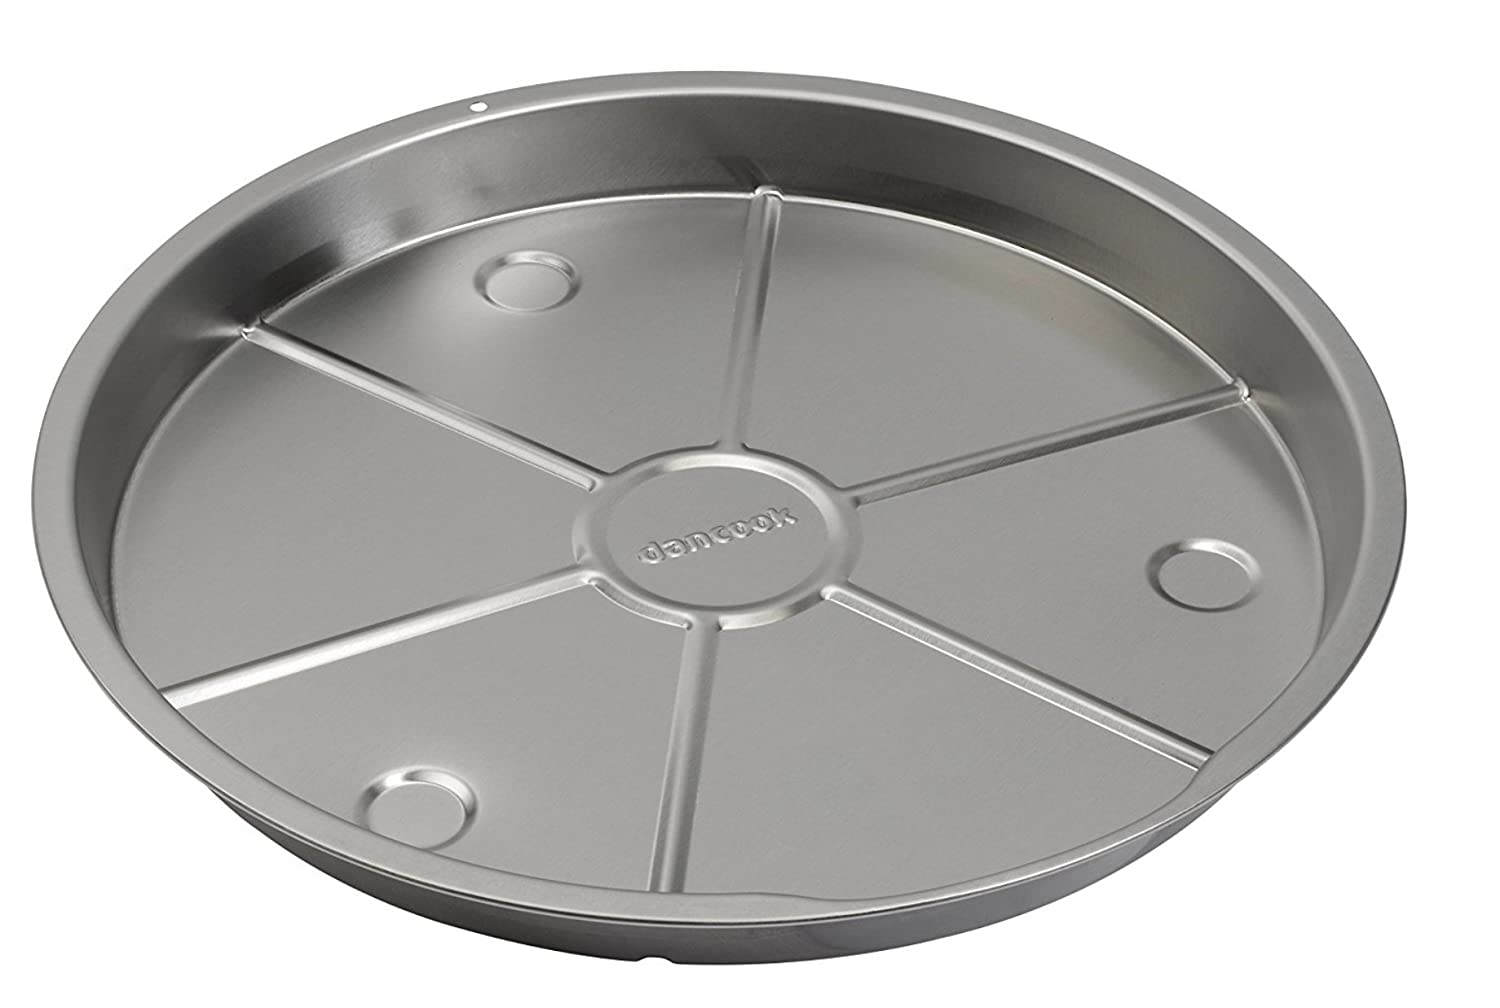 product no. 120 124 Dancook Cleaning Tray for Circular Cooking Grids - Stainless Steel.